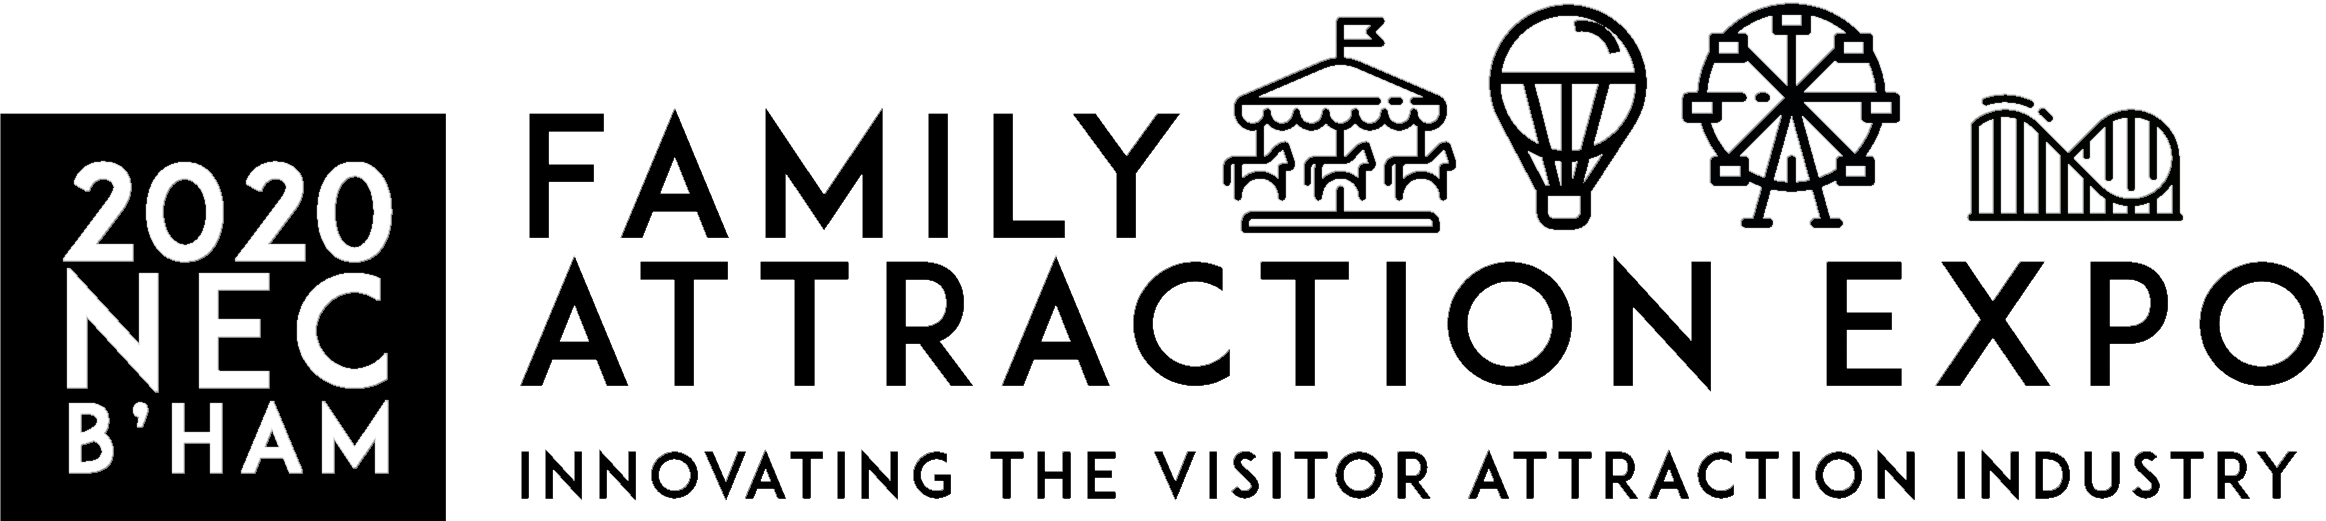 family attraction expo logo white large